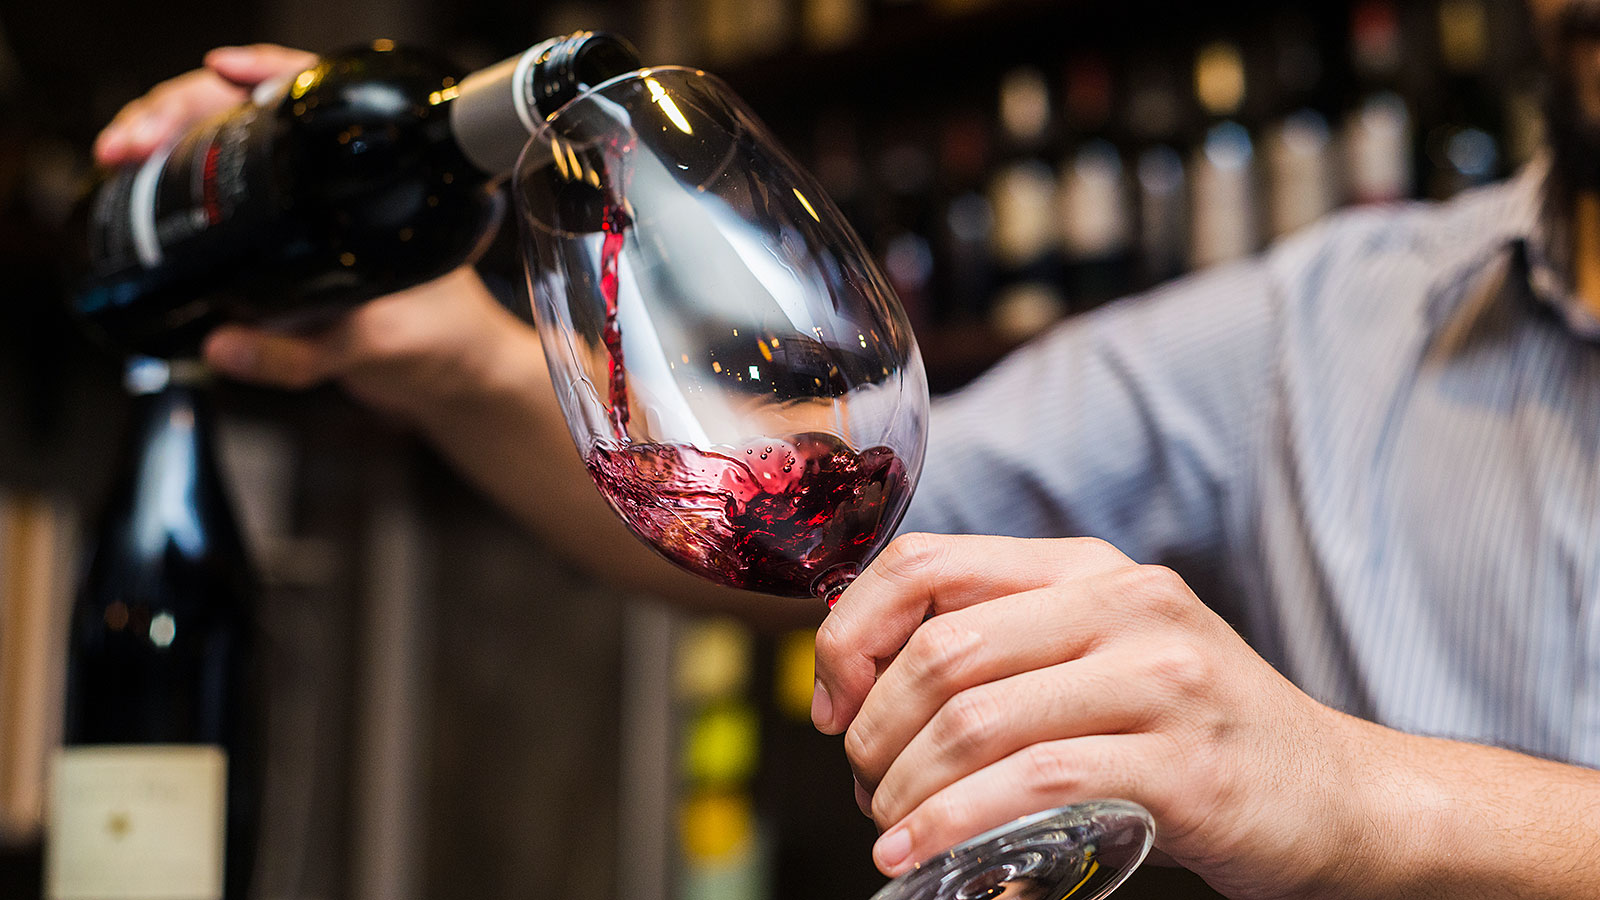 Gut check: This new study provides yet another healthy reason to enjoy red wine